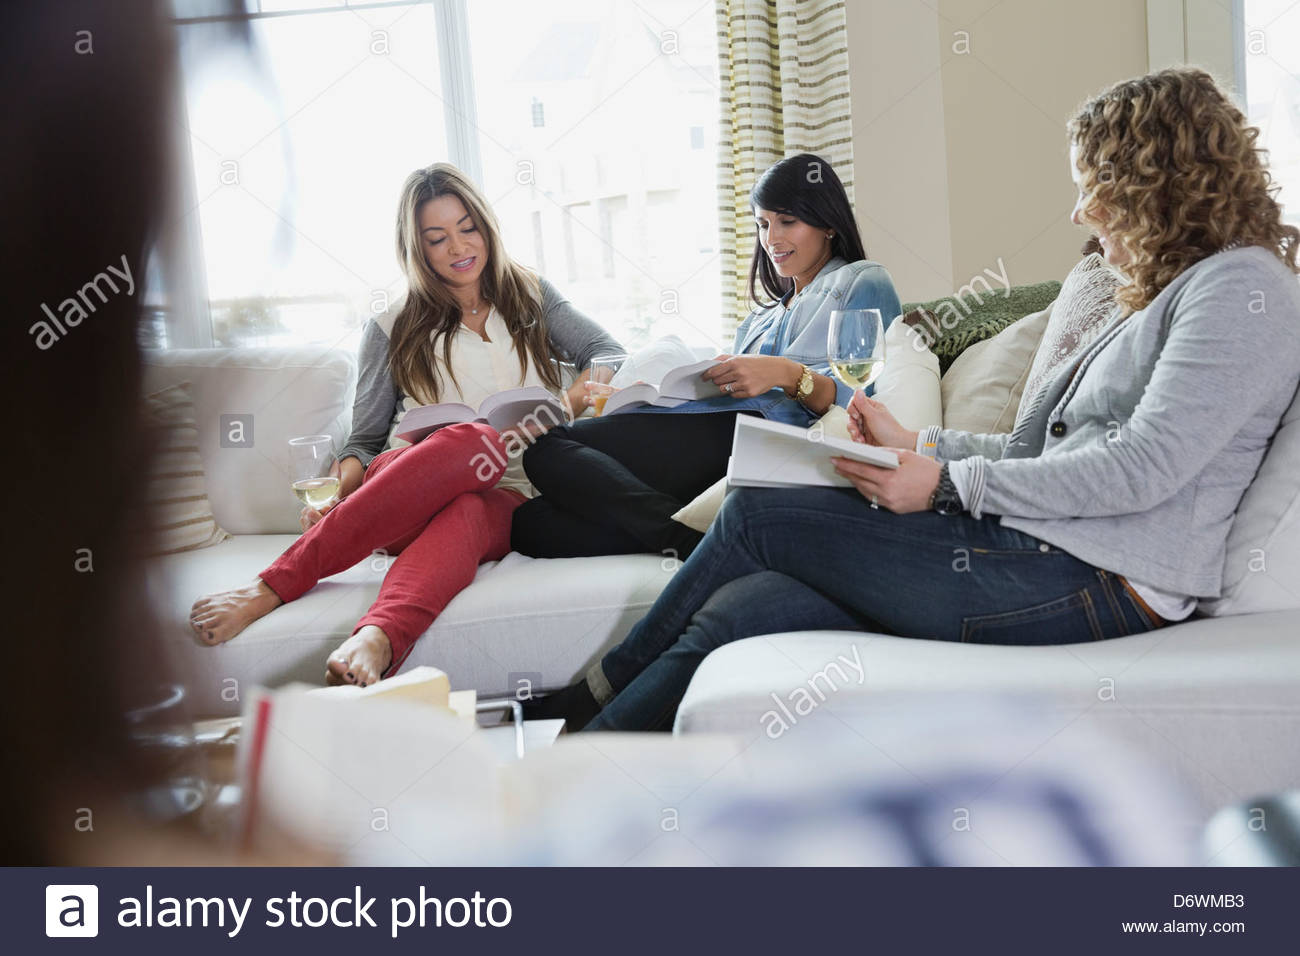 Mature women reading books during house party - Stock Image